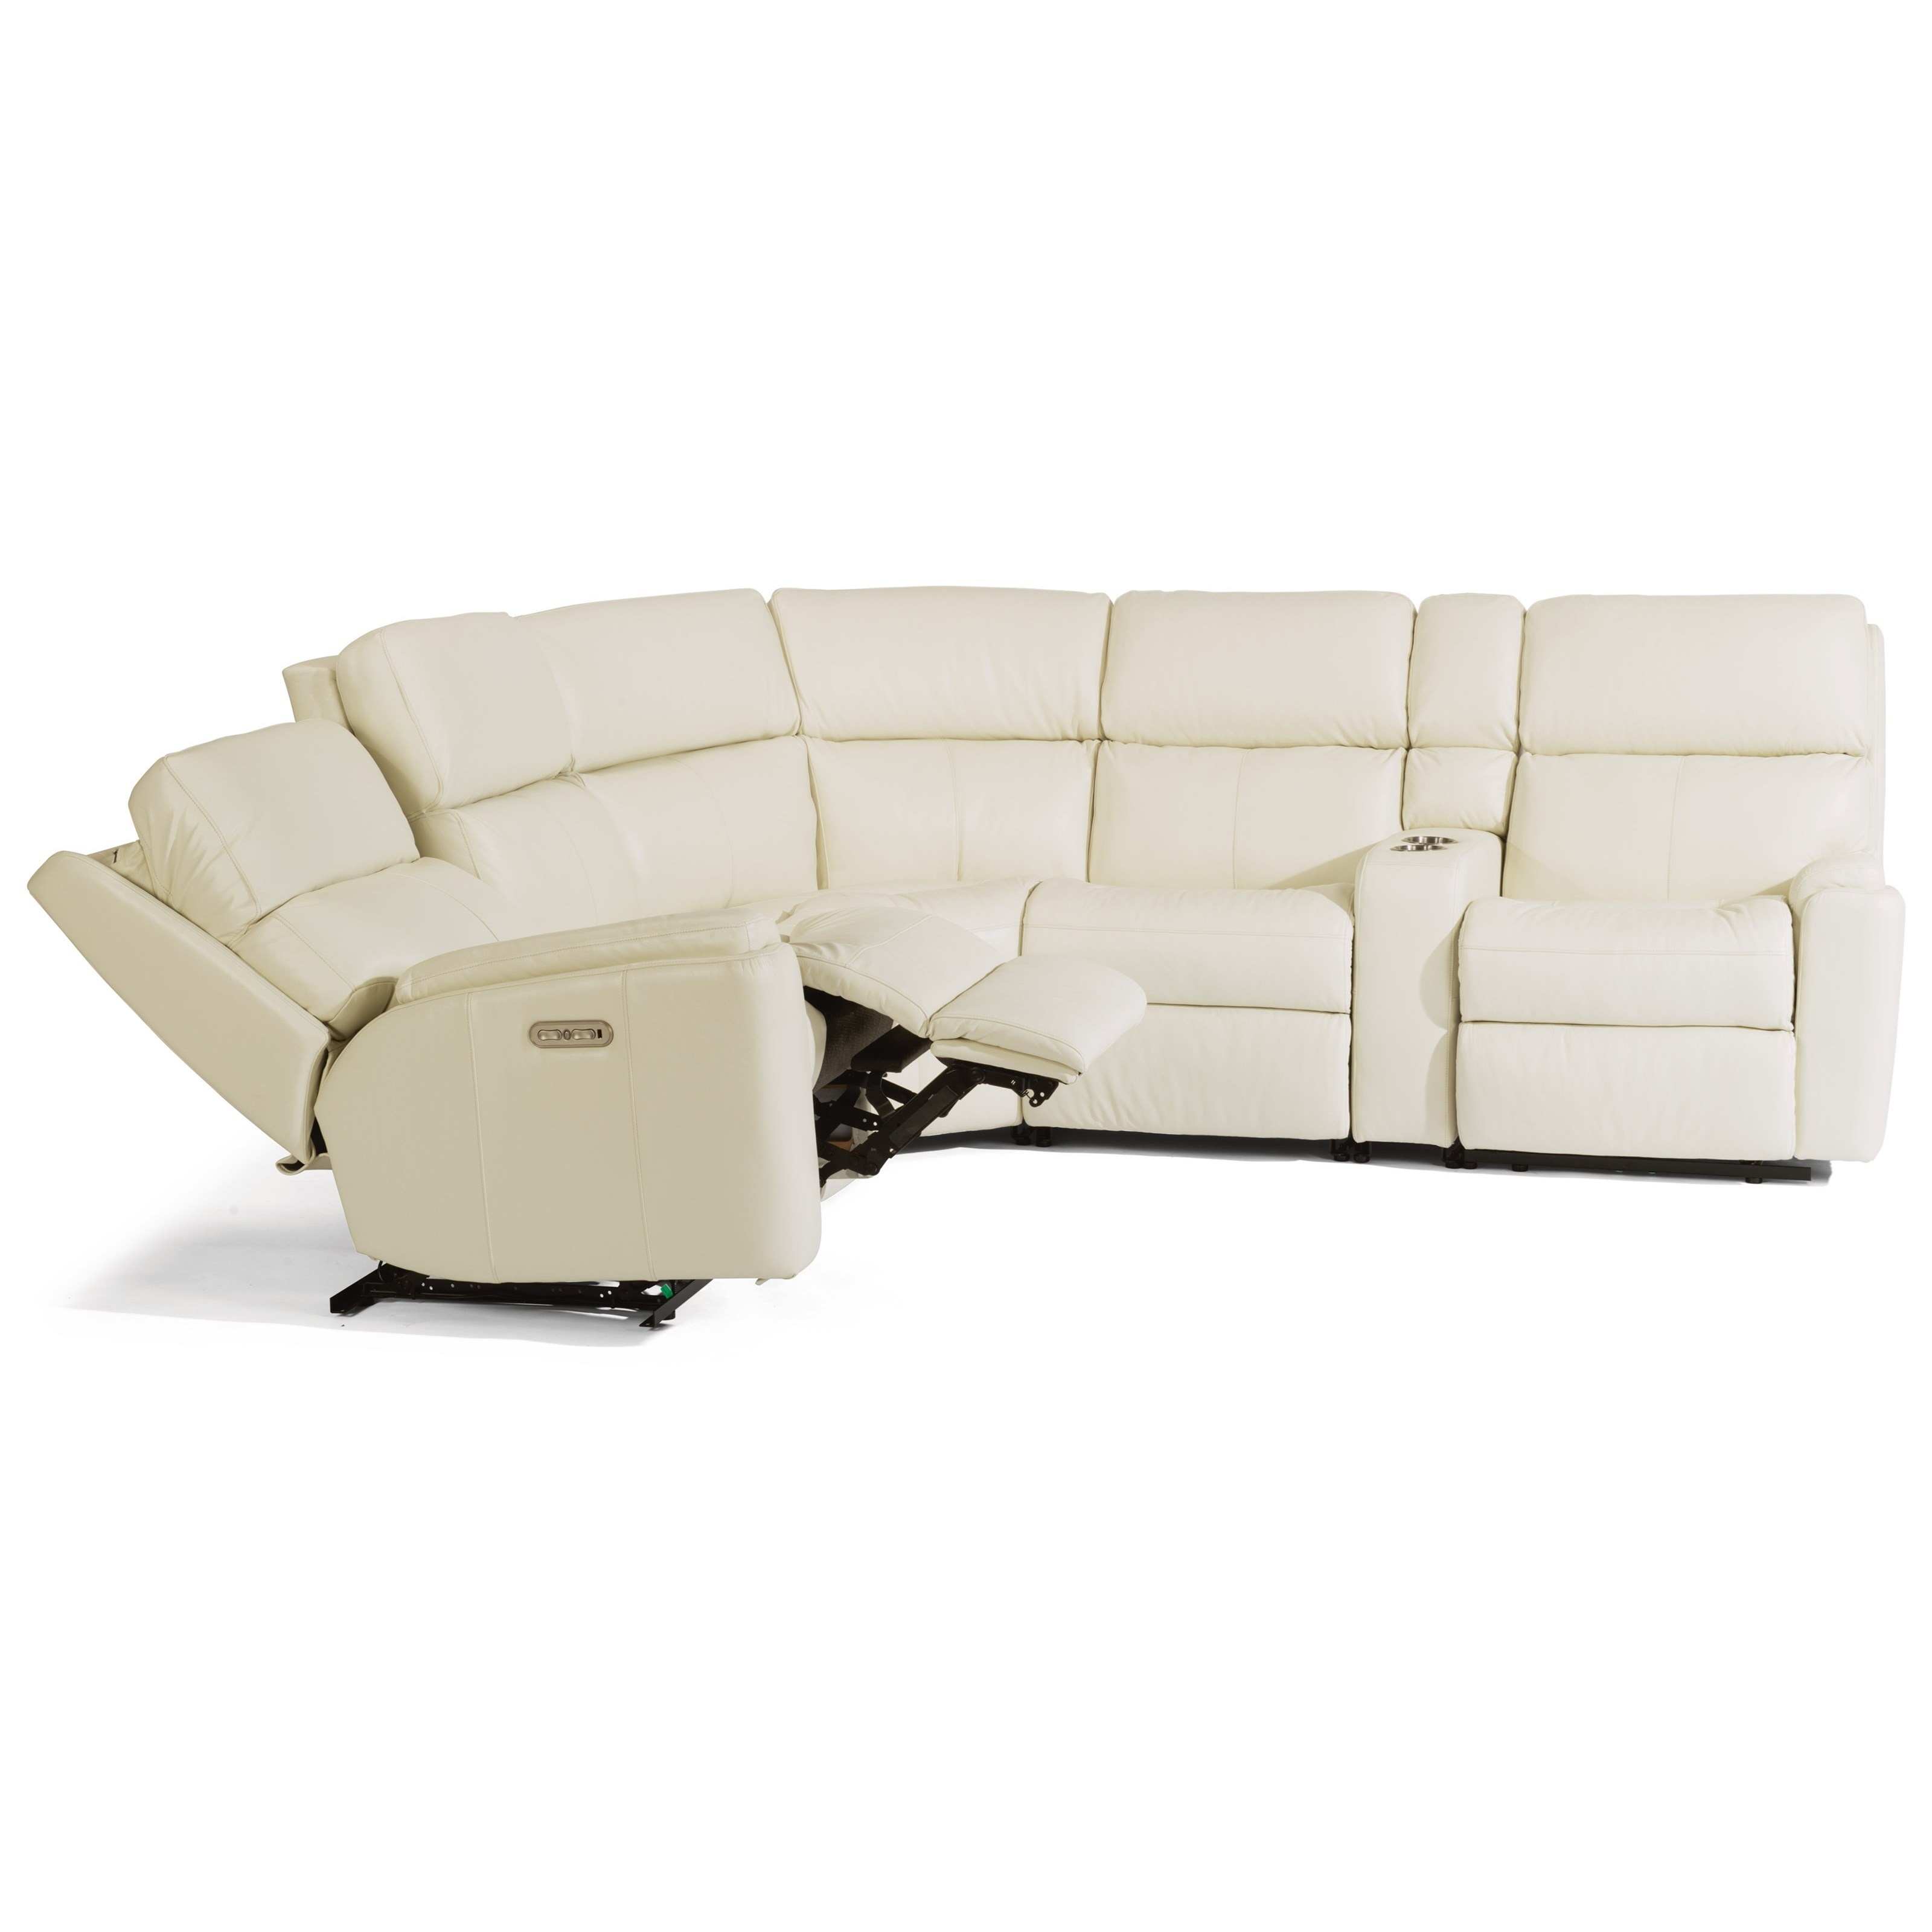 Rio 6 Piece Manual Reclining Sectional by Flexsteel at Steger's Furniture